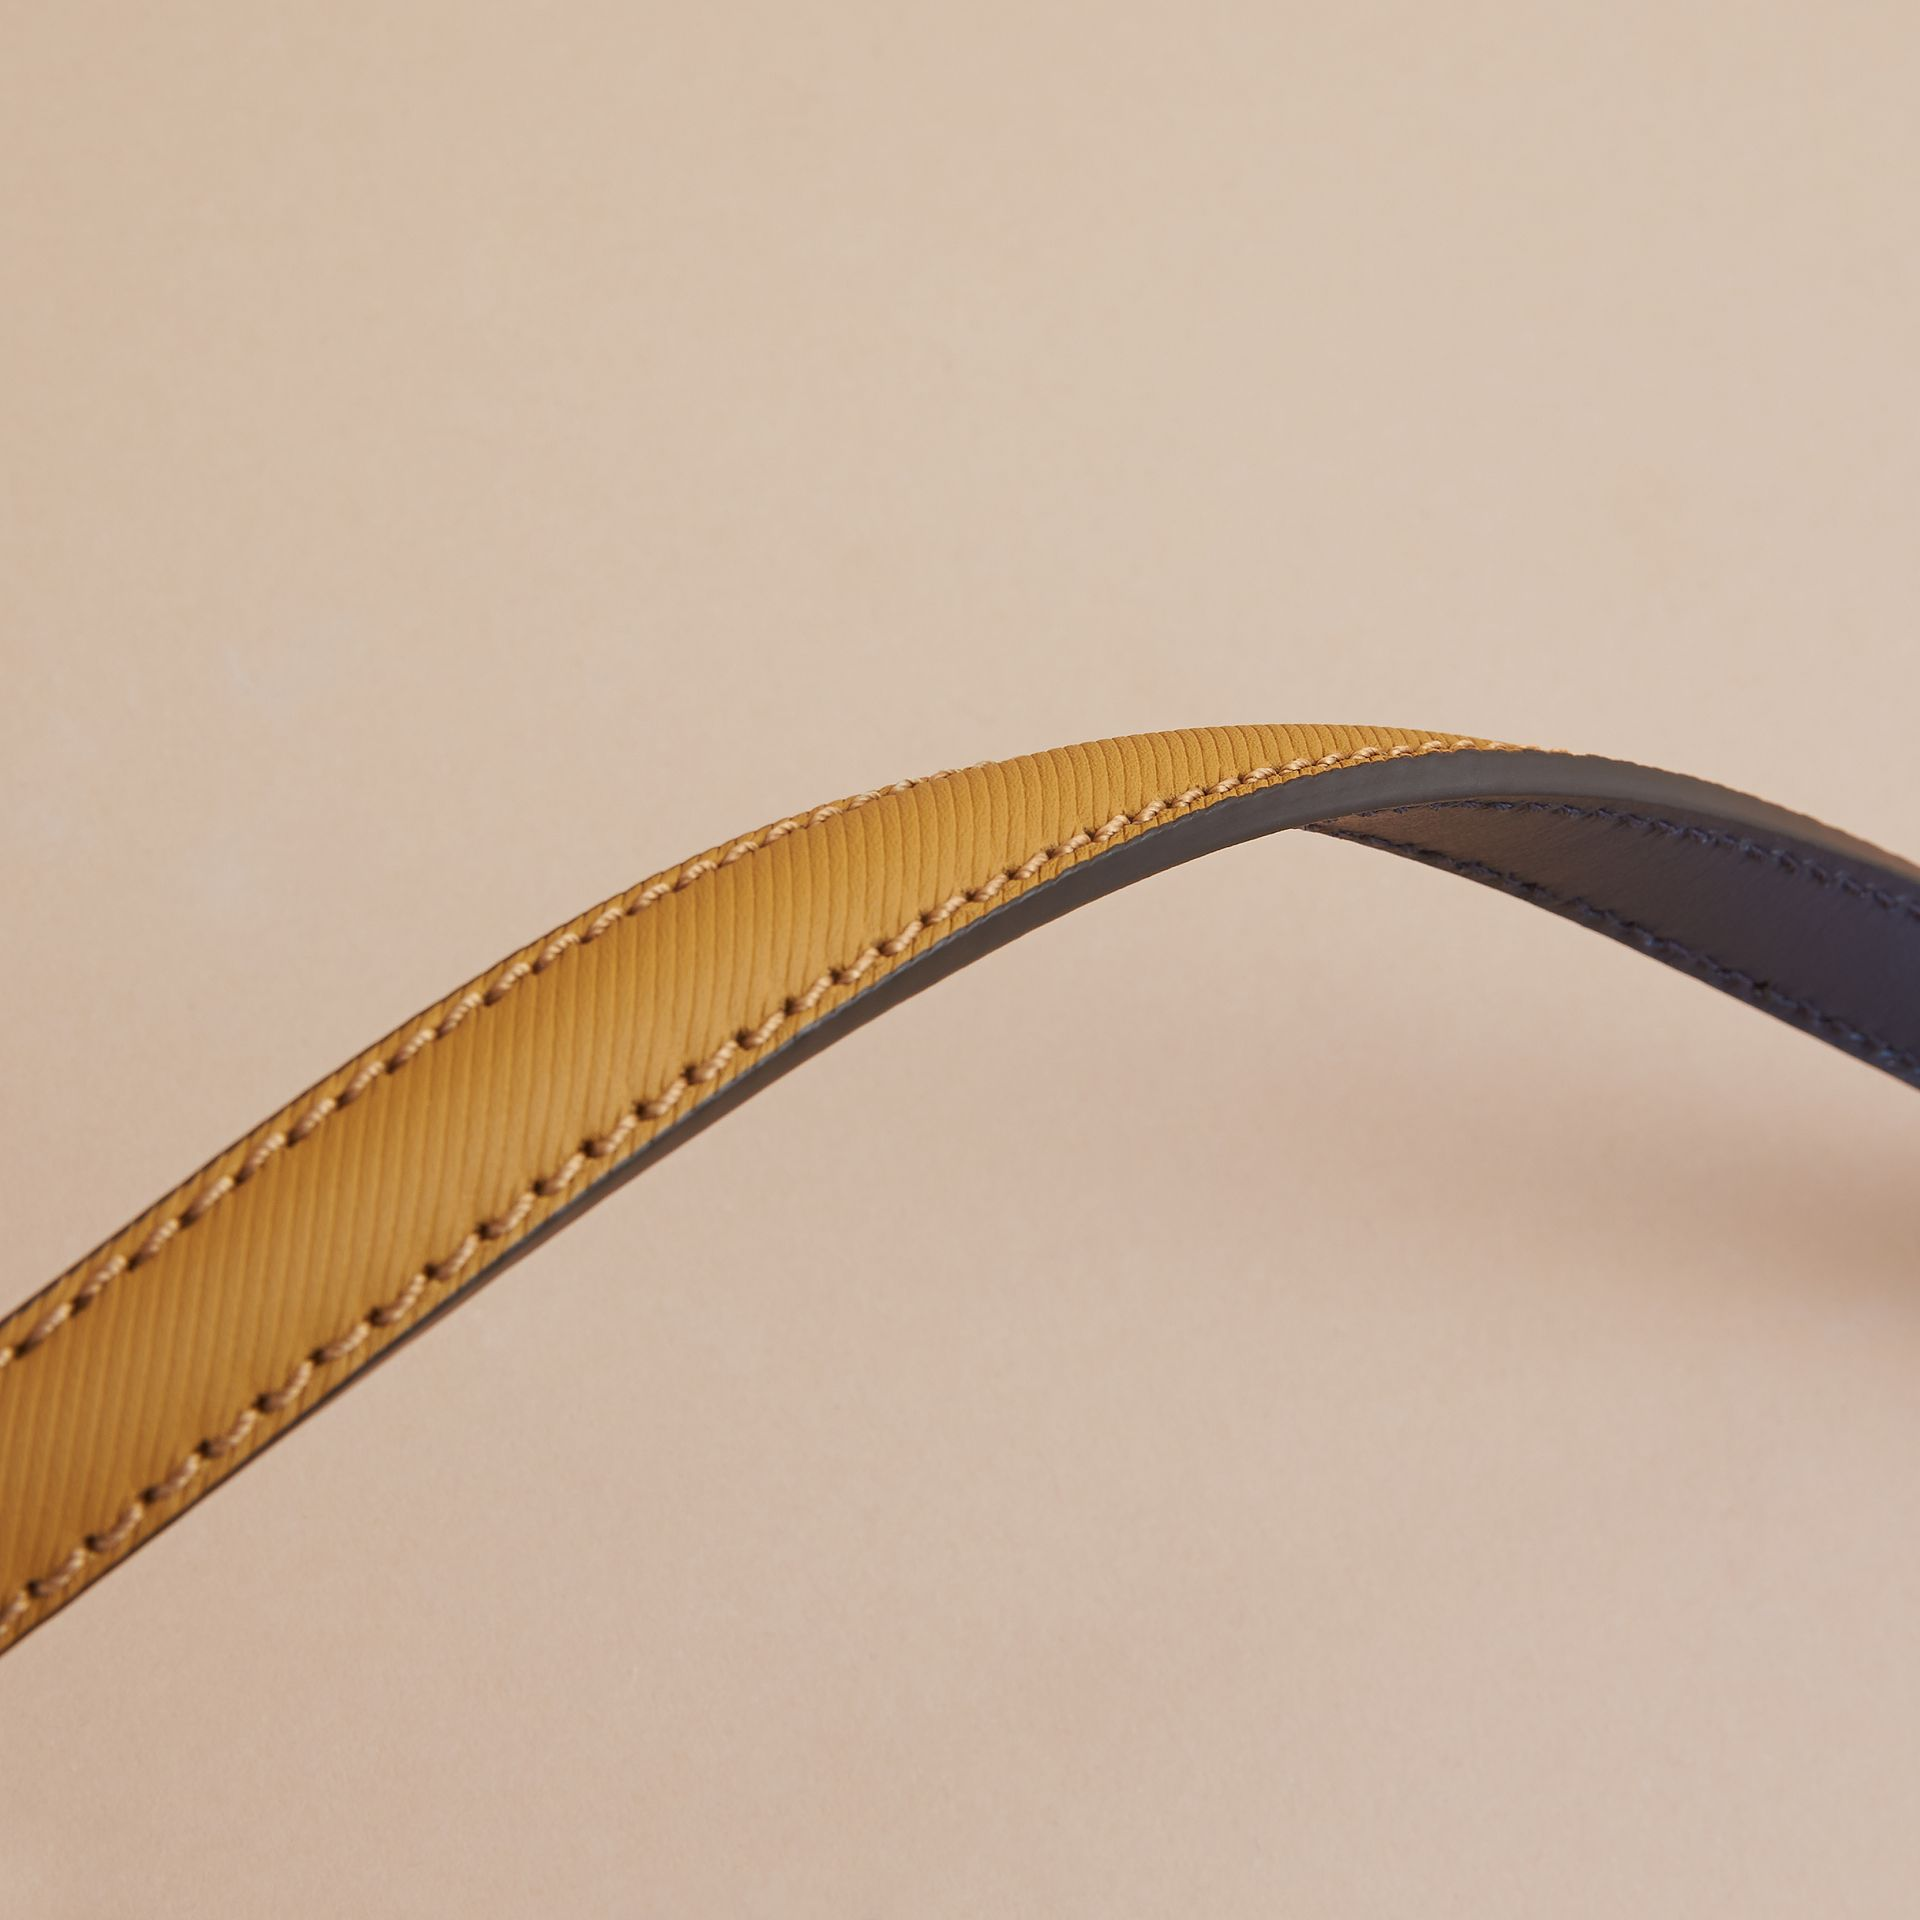 Two-tone Trench Leather Belt Ochre Yellow / Ink Blue - gallery image 3